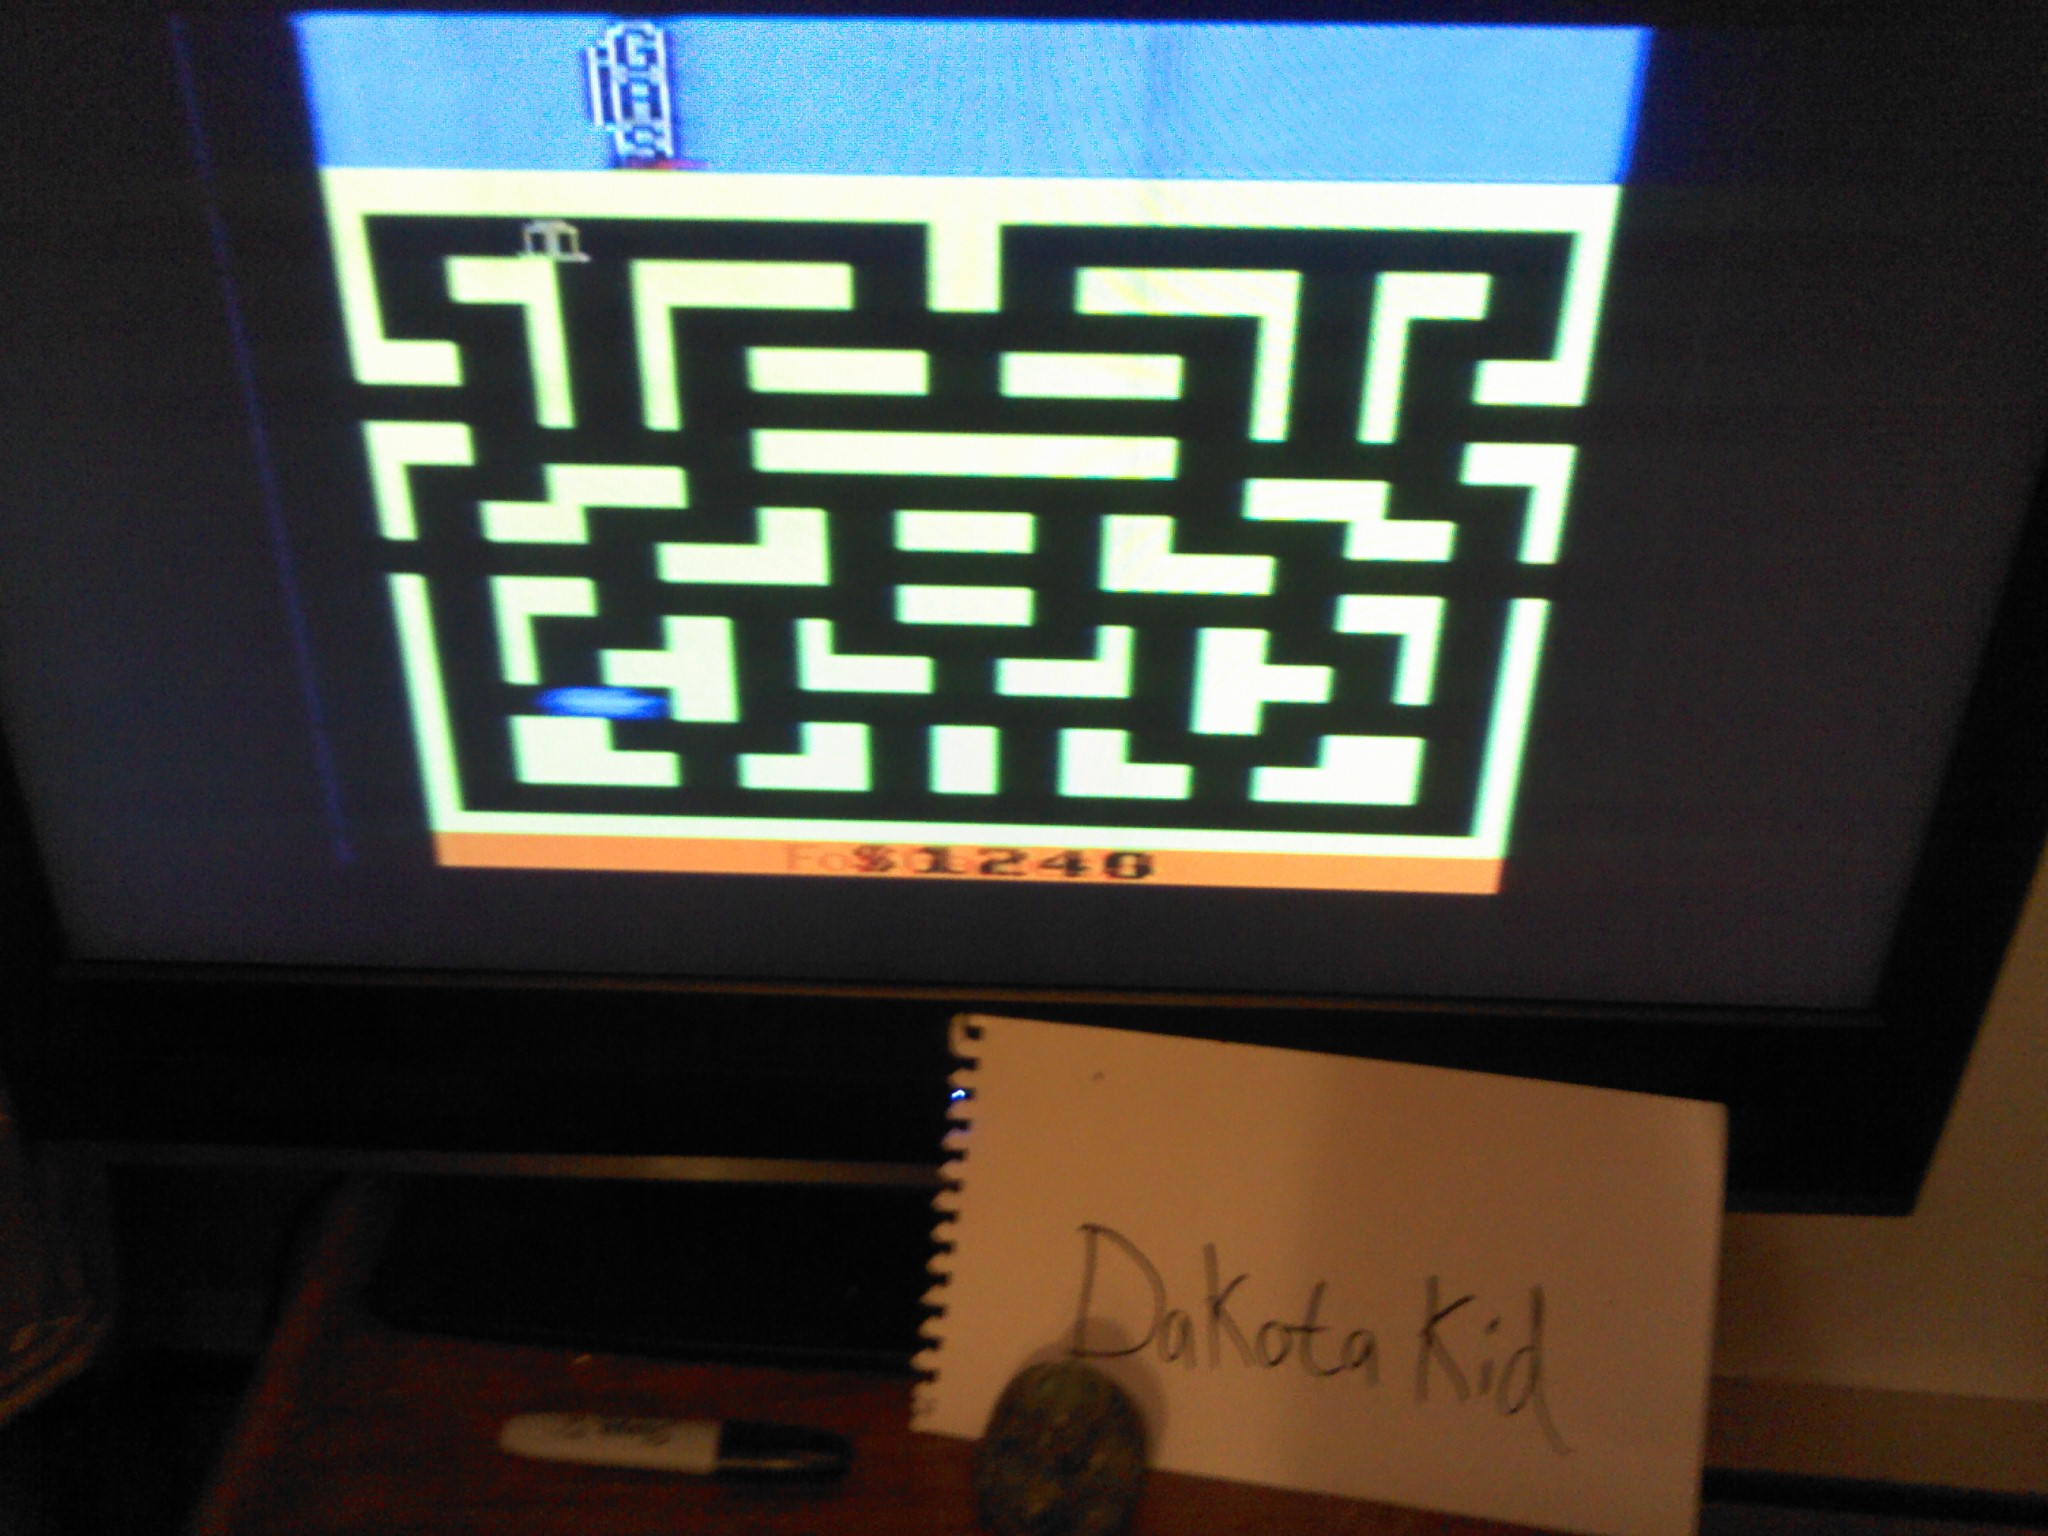 DakotaKid: Bank Heist (Atari 2600 Novice/B) 1,240 points on 2014-05-17 20:41:47